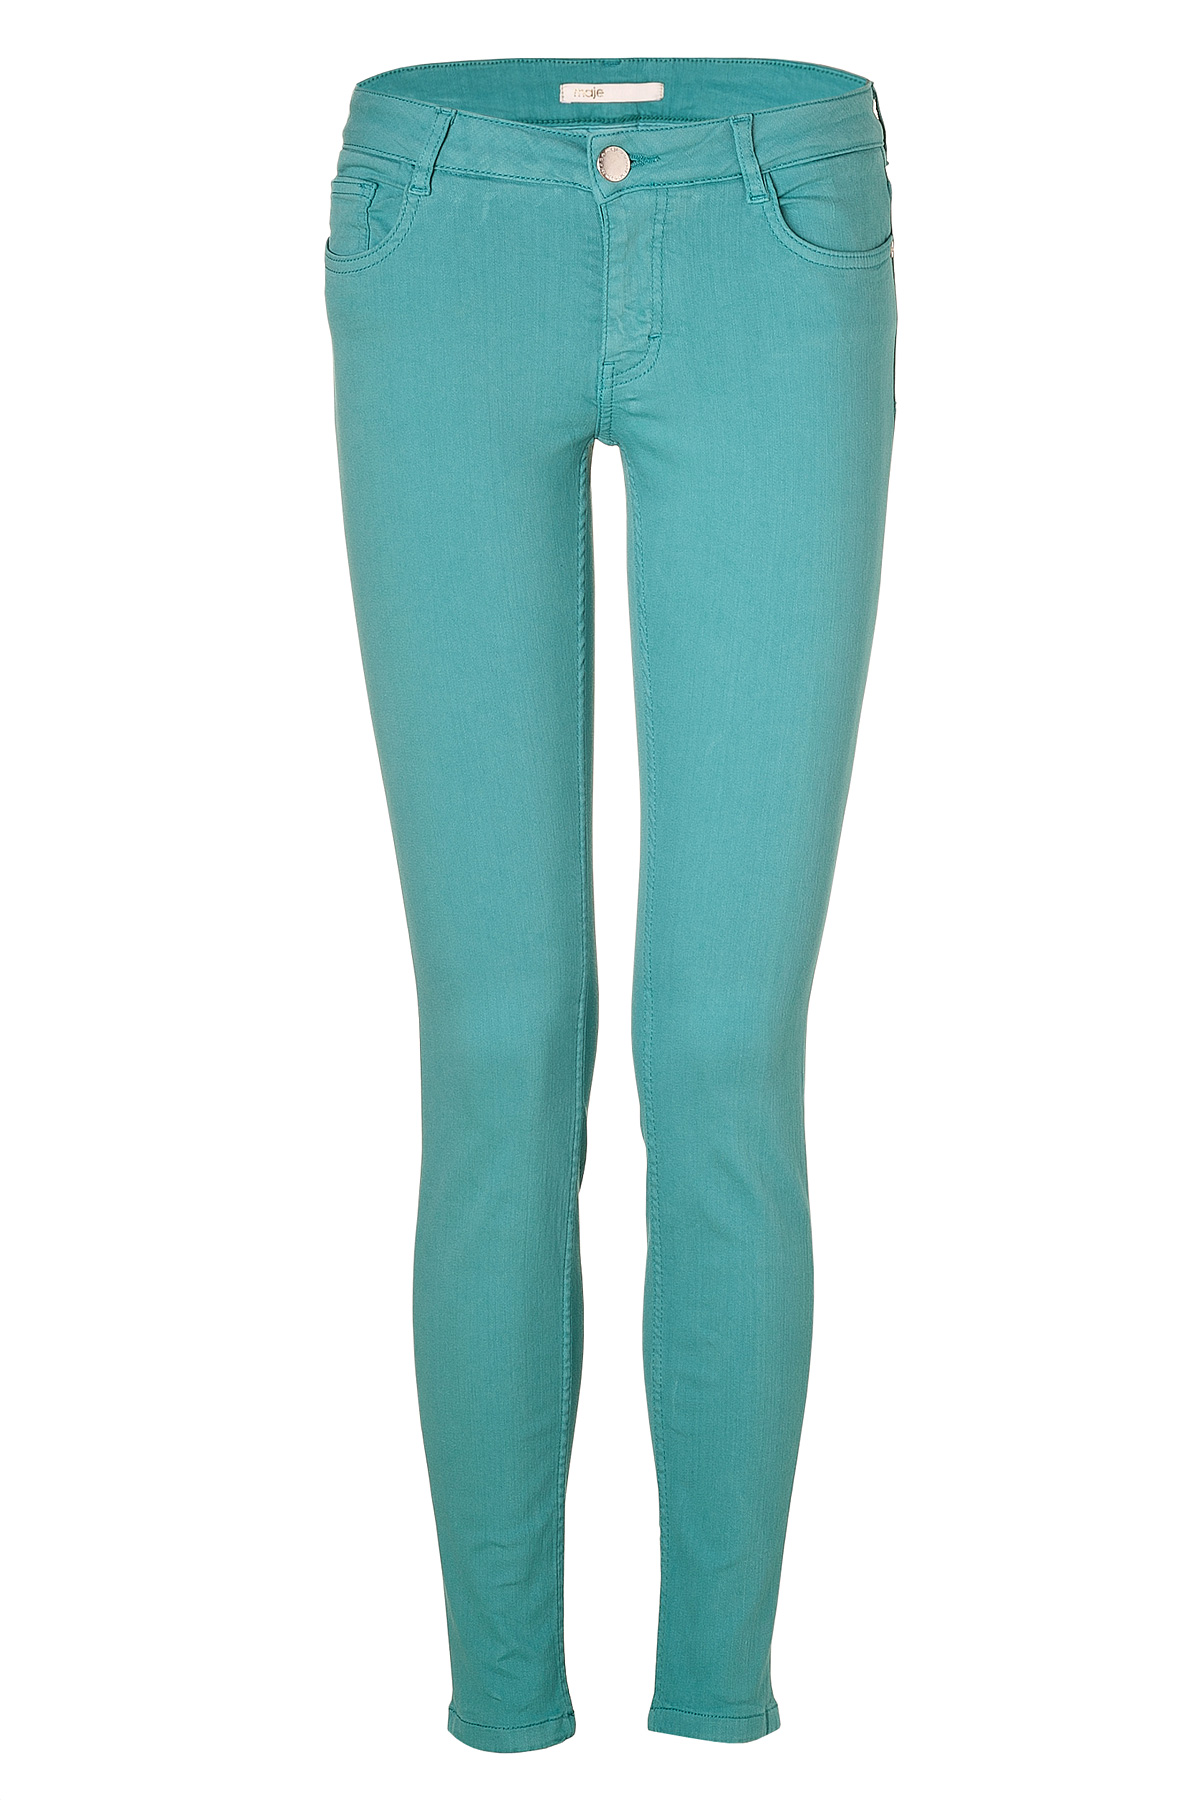 Maje Turquoise Skinny Jeans in Blue | Lyst